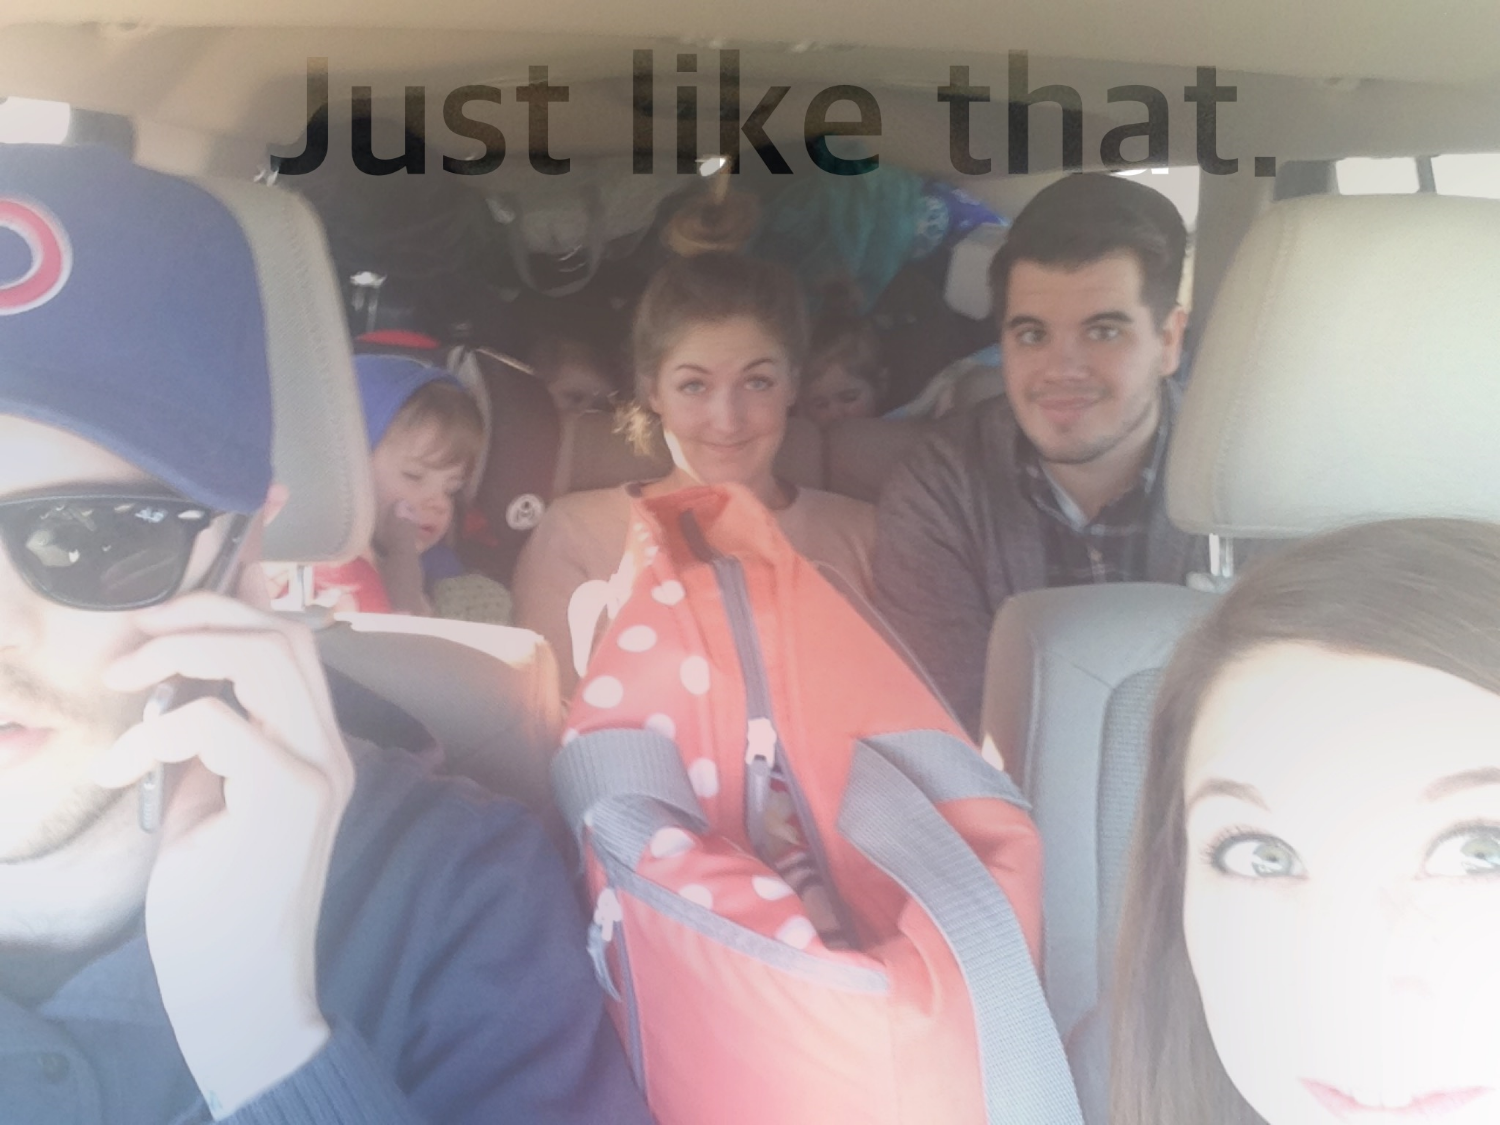 My sister in-law, her husband, three kids, Austin and me and lots and lots of stuff, packed up and headed from Iowa to Texas January 2015.